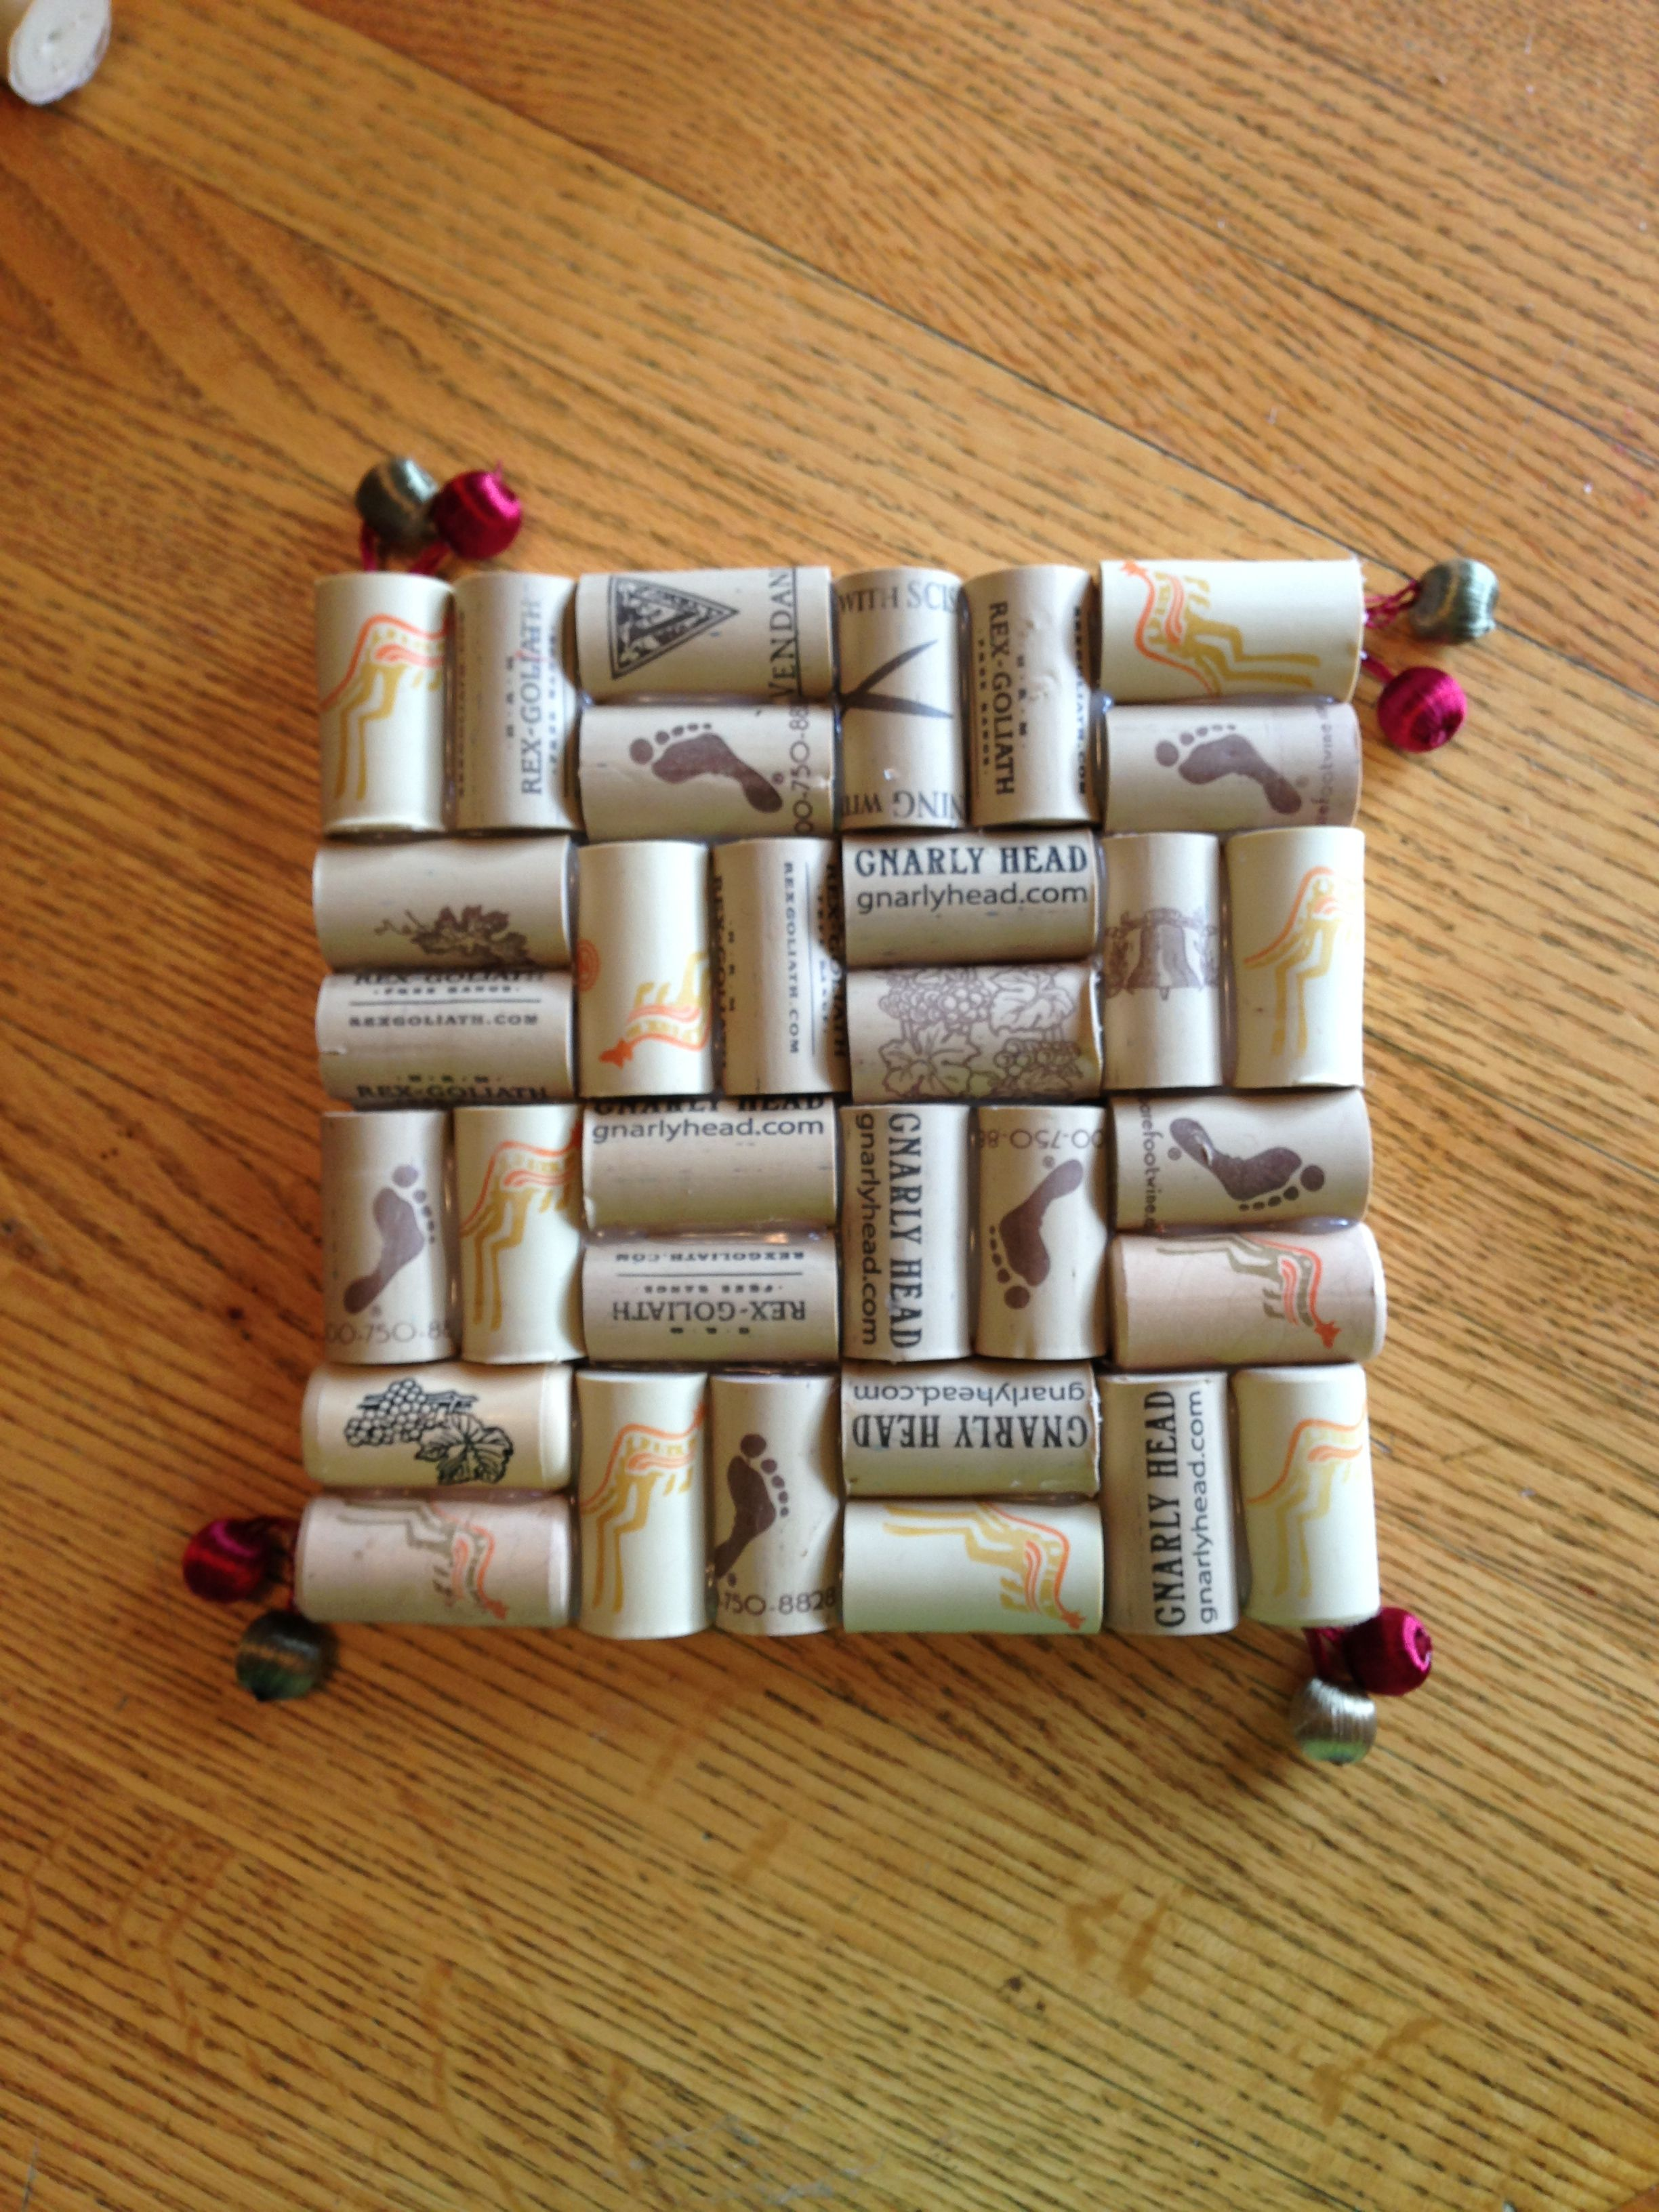 my newest cork creation - hot plate